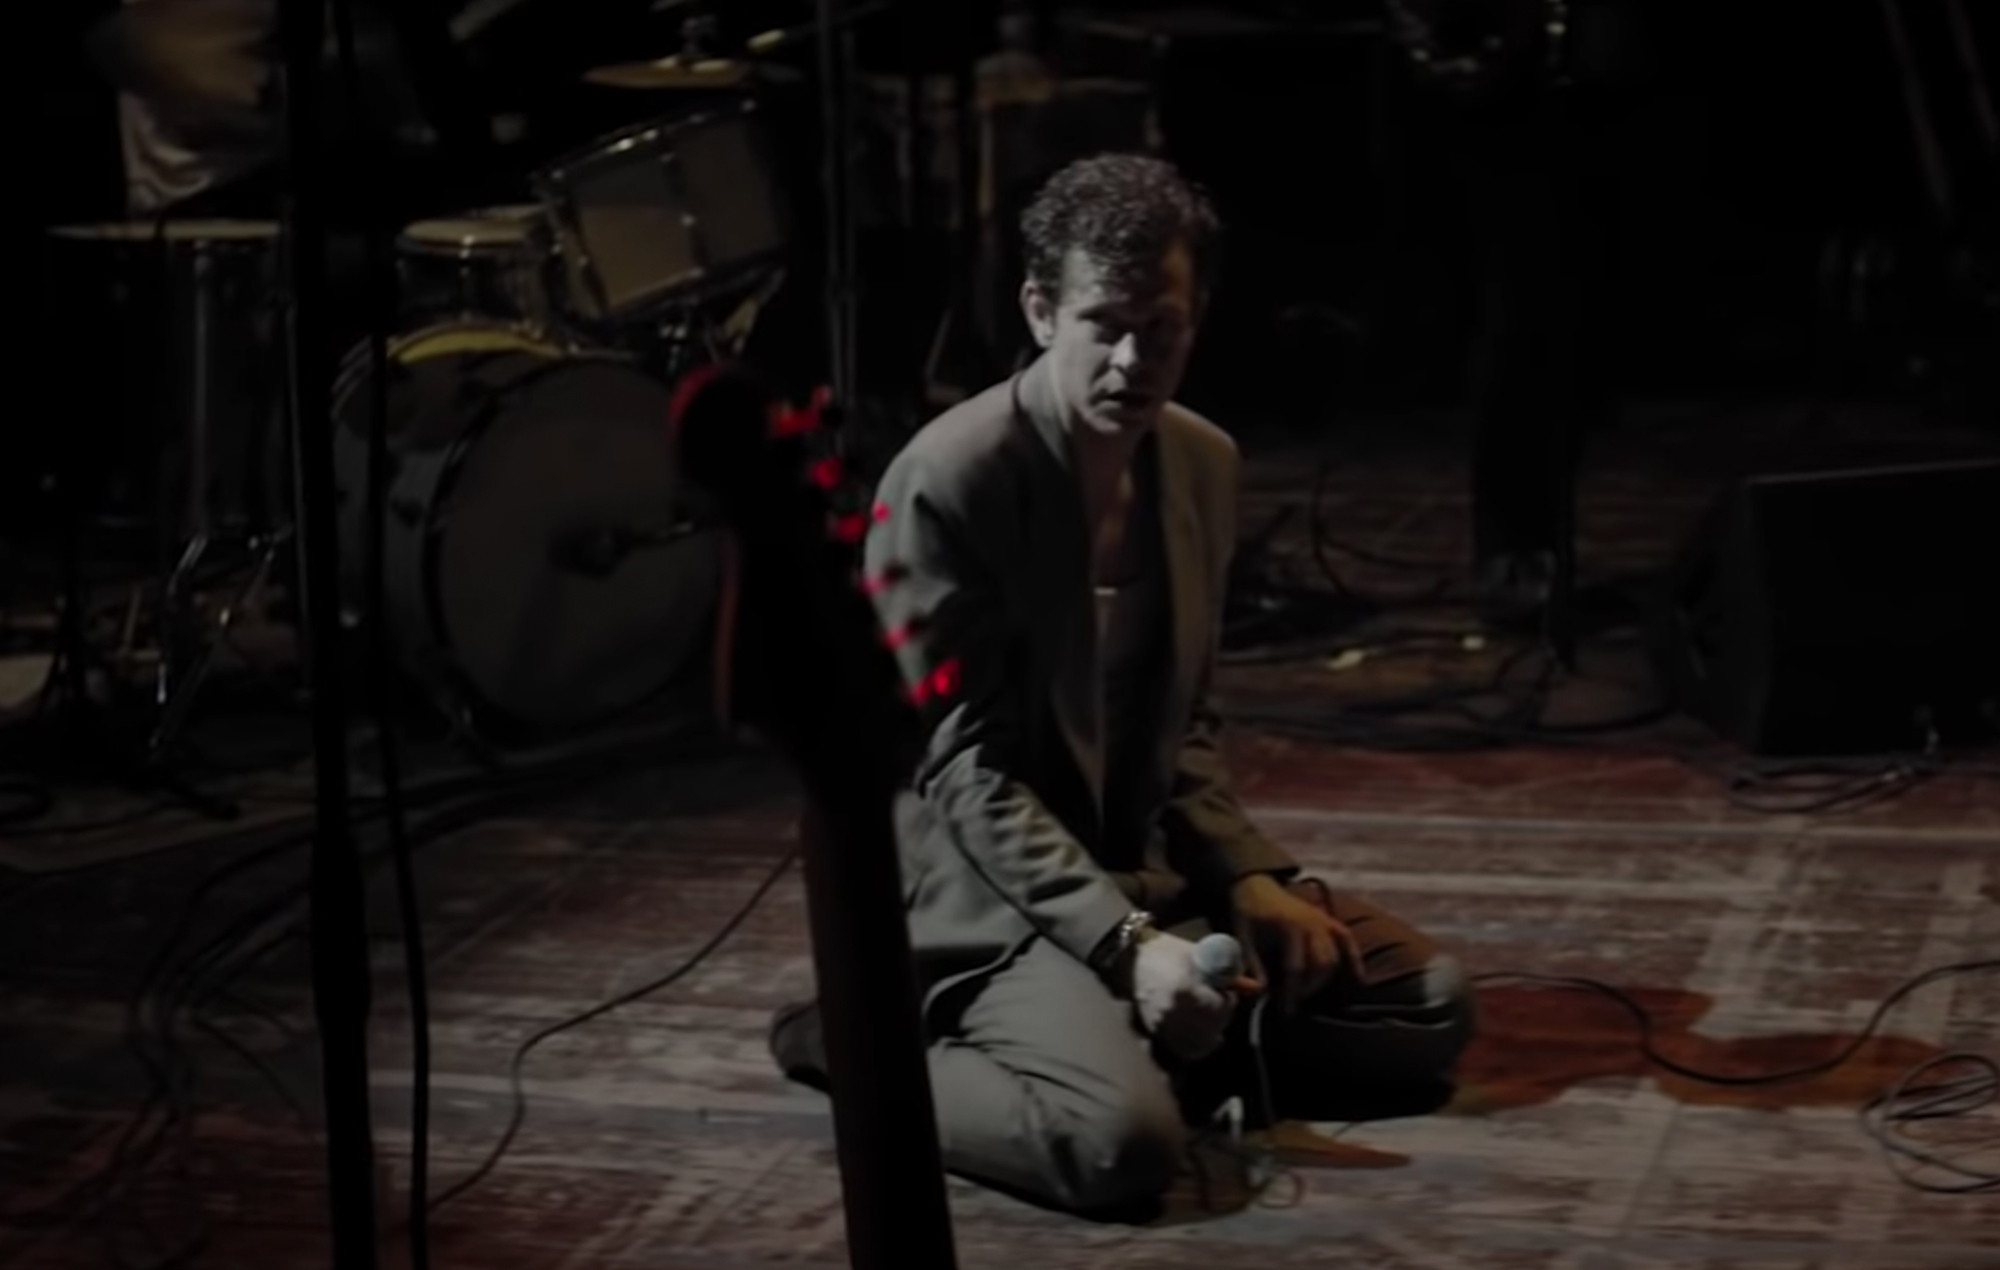 Perfume Genius releases concert film marking one year of 'Set My Heart On Fire Immediately'